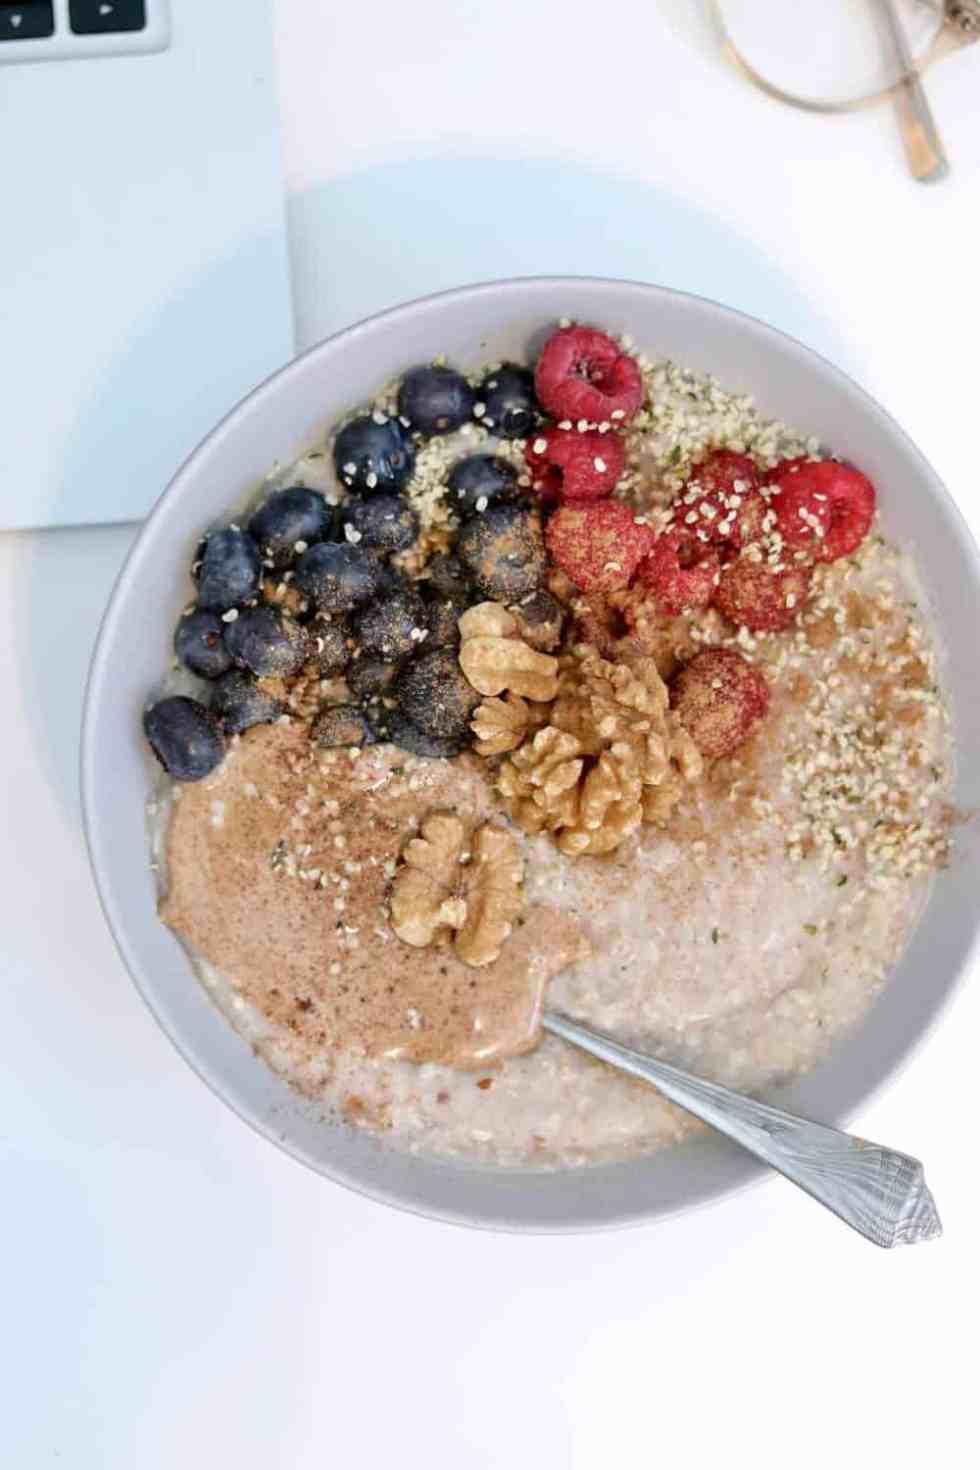 What I eat in a day always varies, but today I had buckwheat porridge.